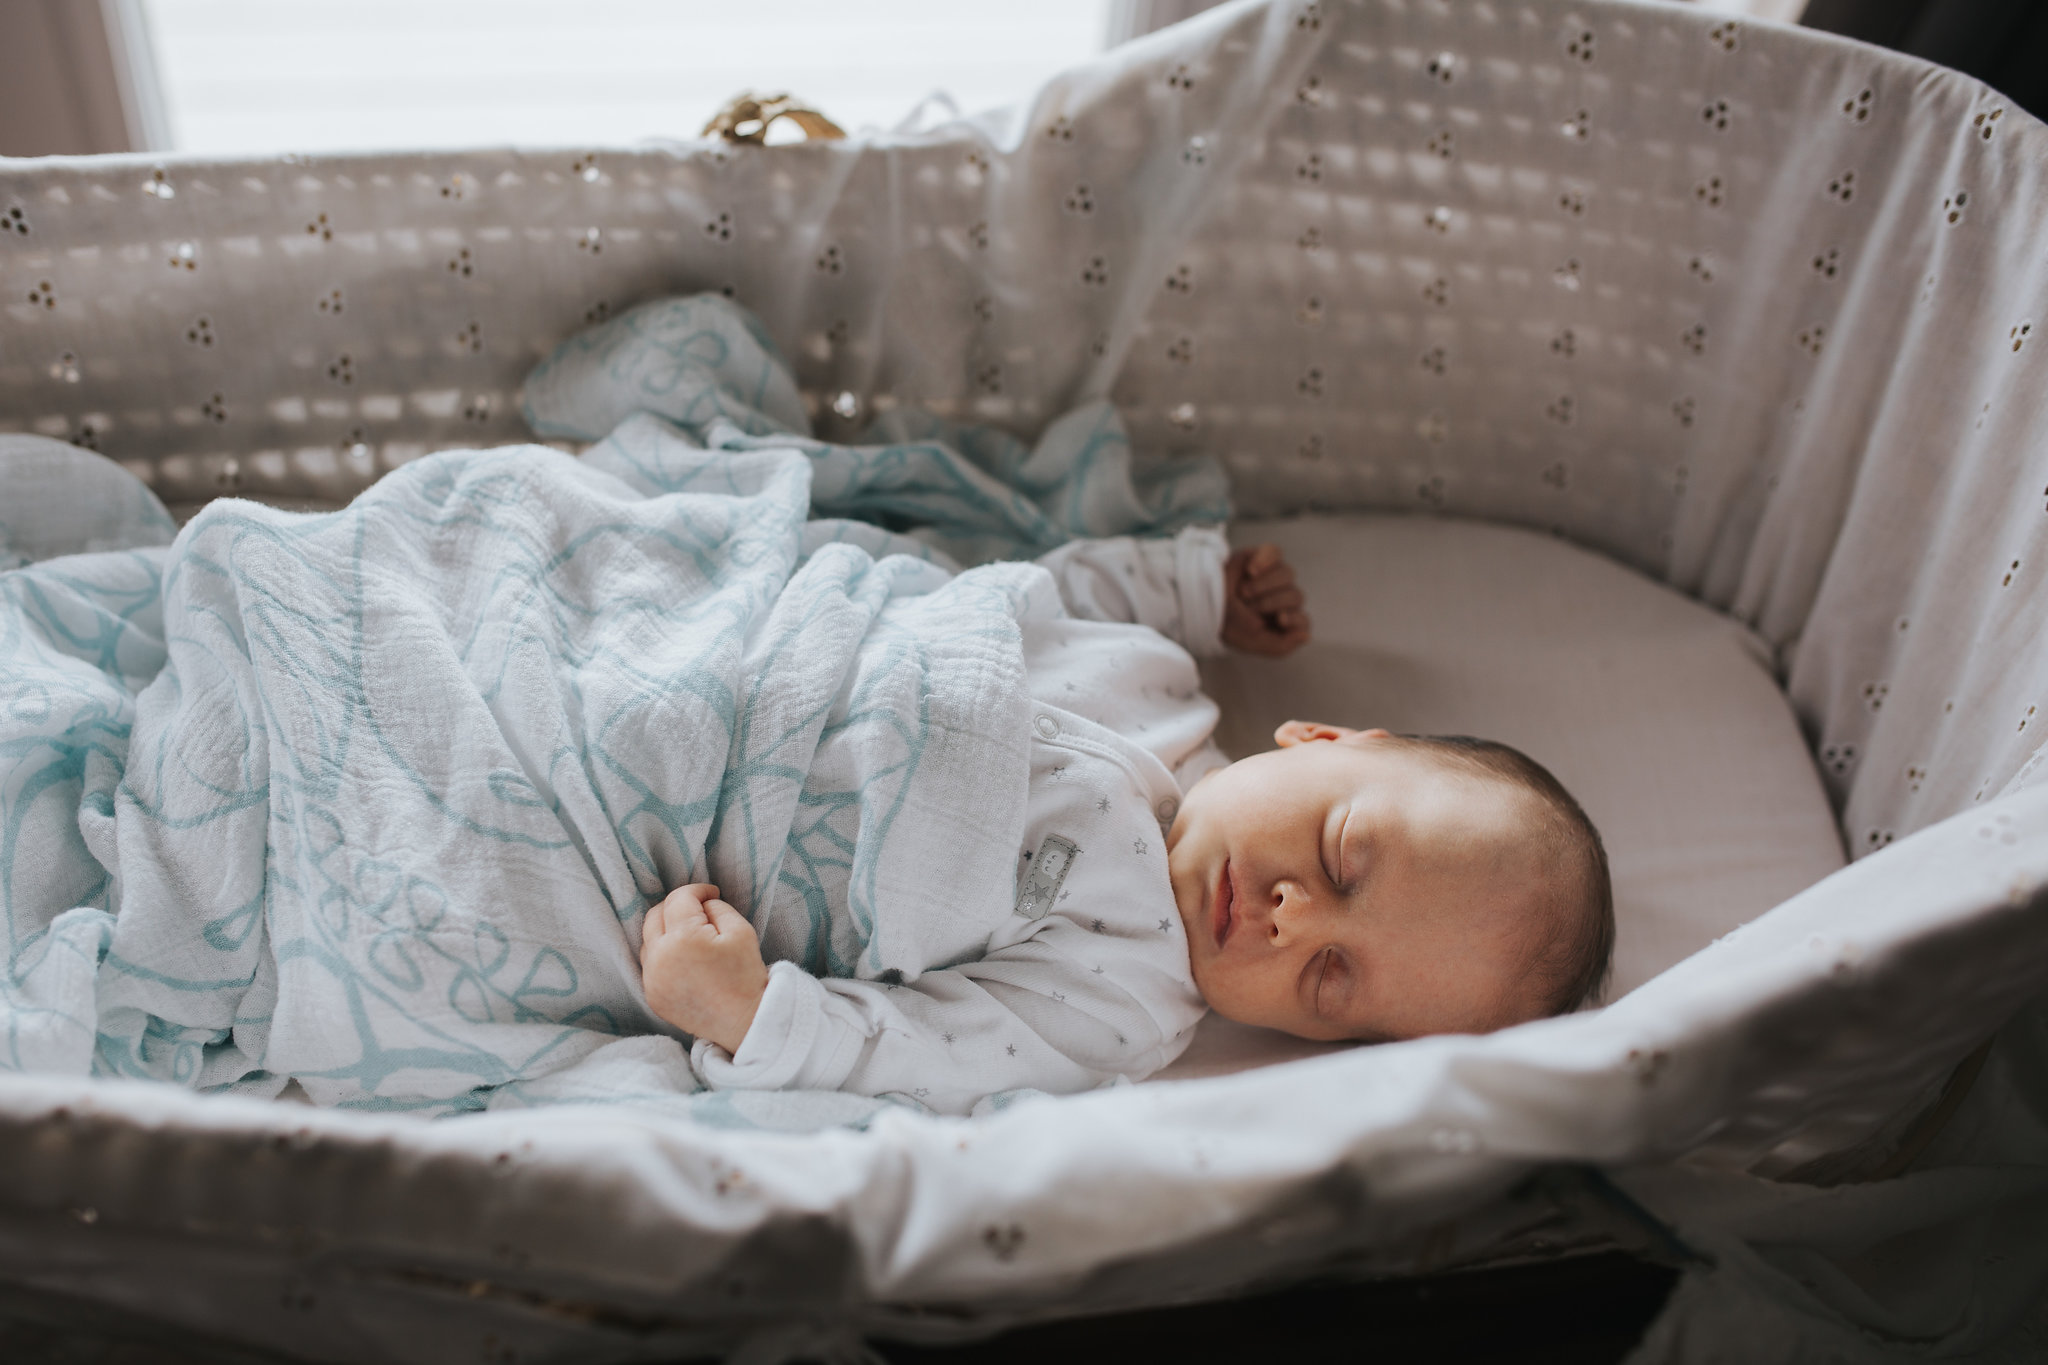 4 week old baby girl sleeping in Moses basket wearing a sleeper and covered in swaddle - Barrie In-Home Photos